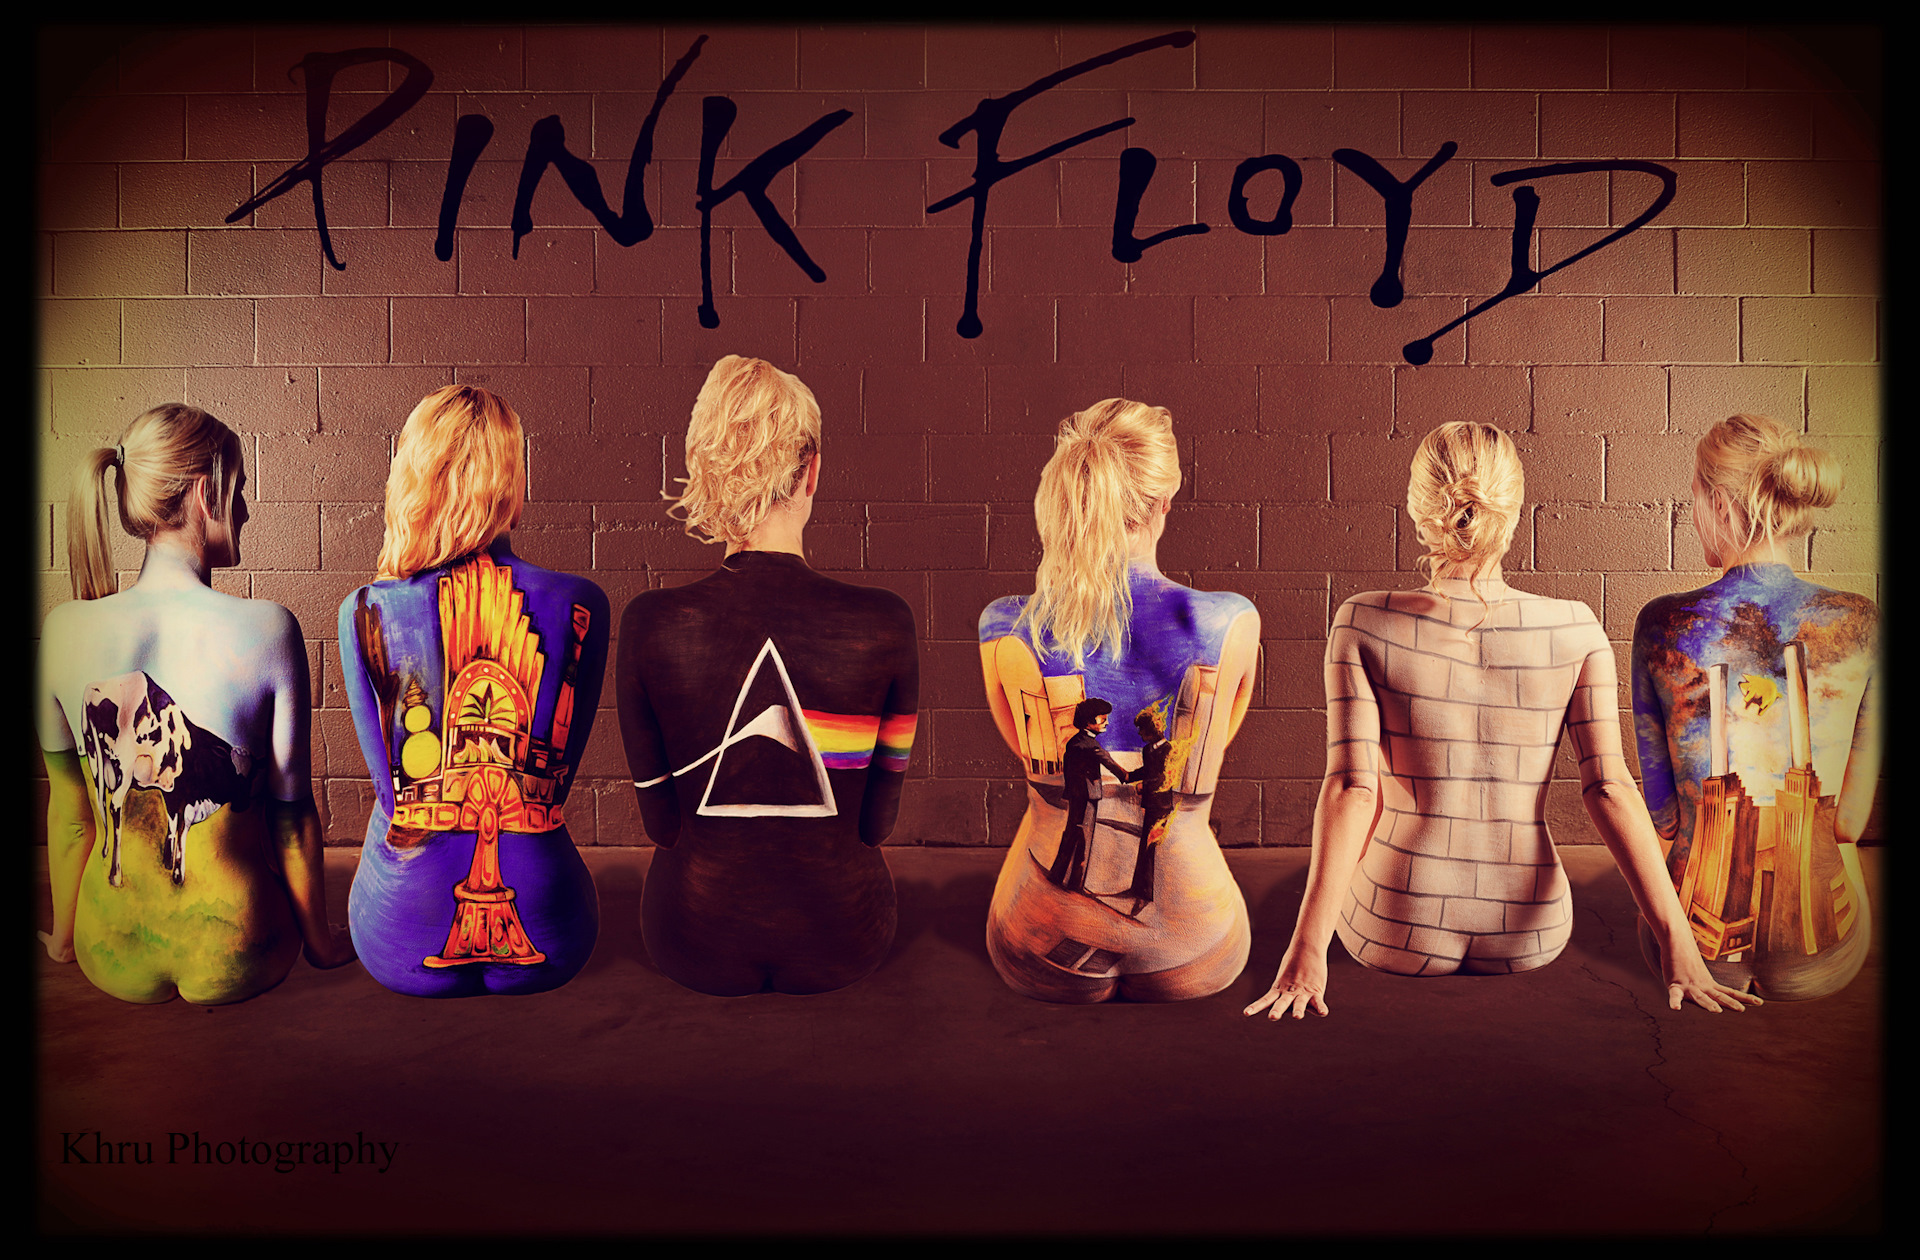 Pink floyd naked chicks poster